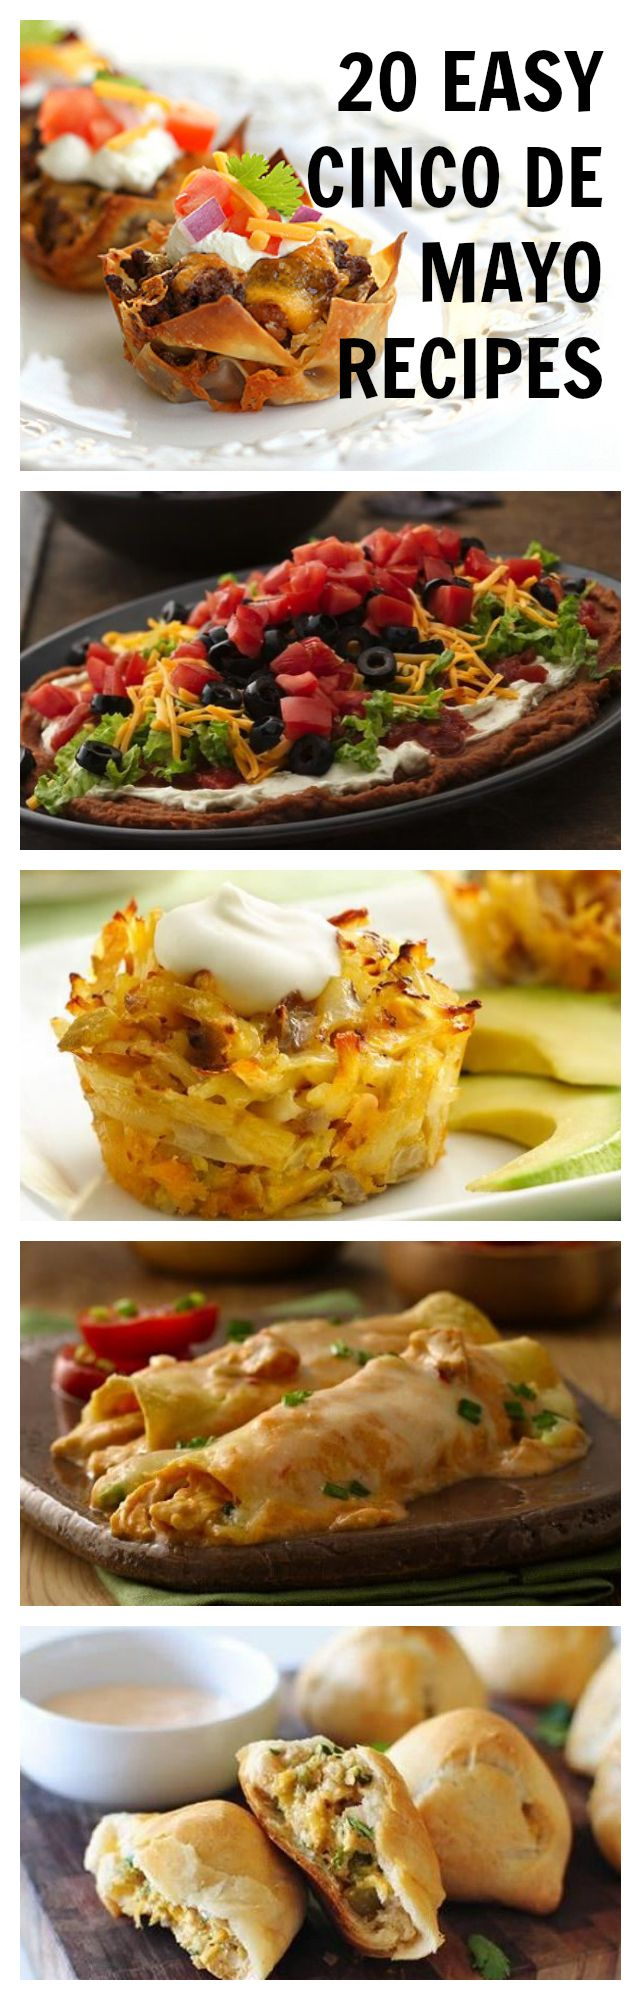 20 Easy Recipes for Cinco de Mayo. A lot of these sound good for appetizers or dinner